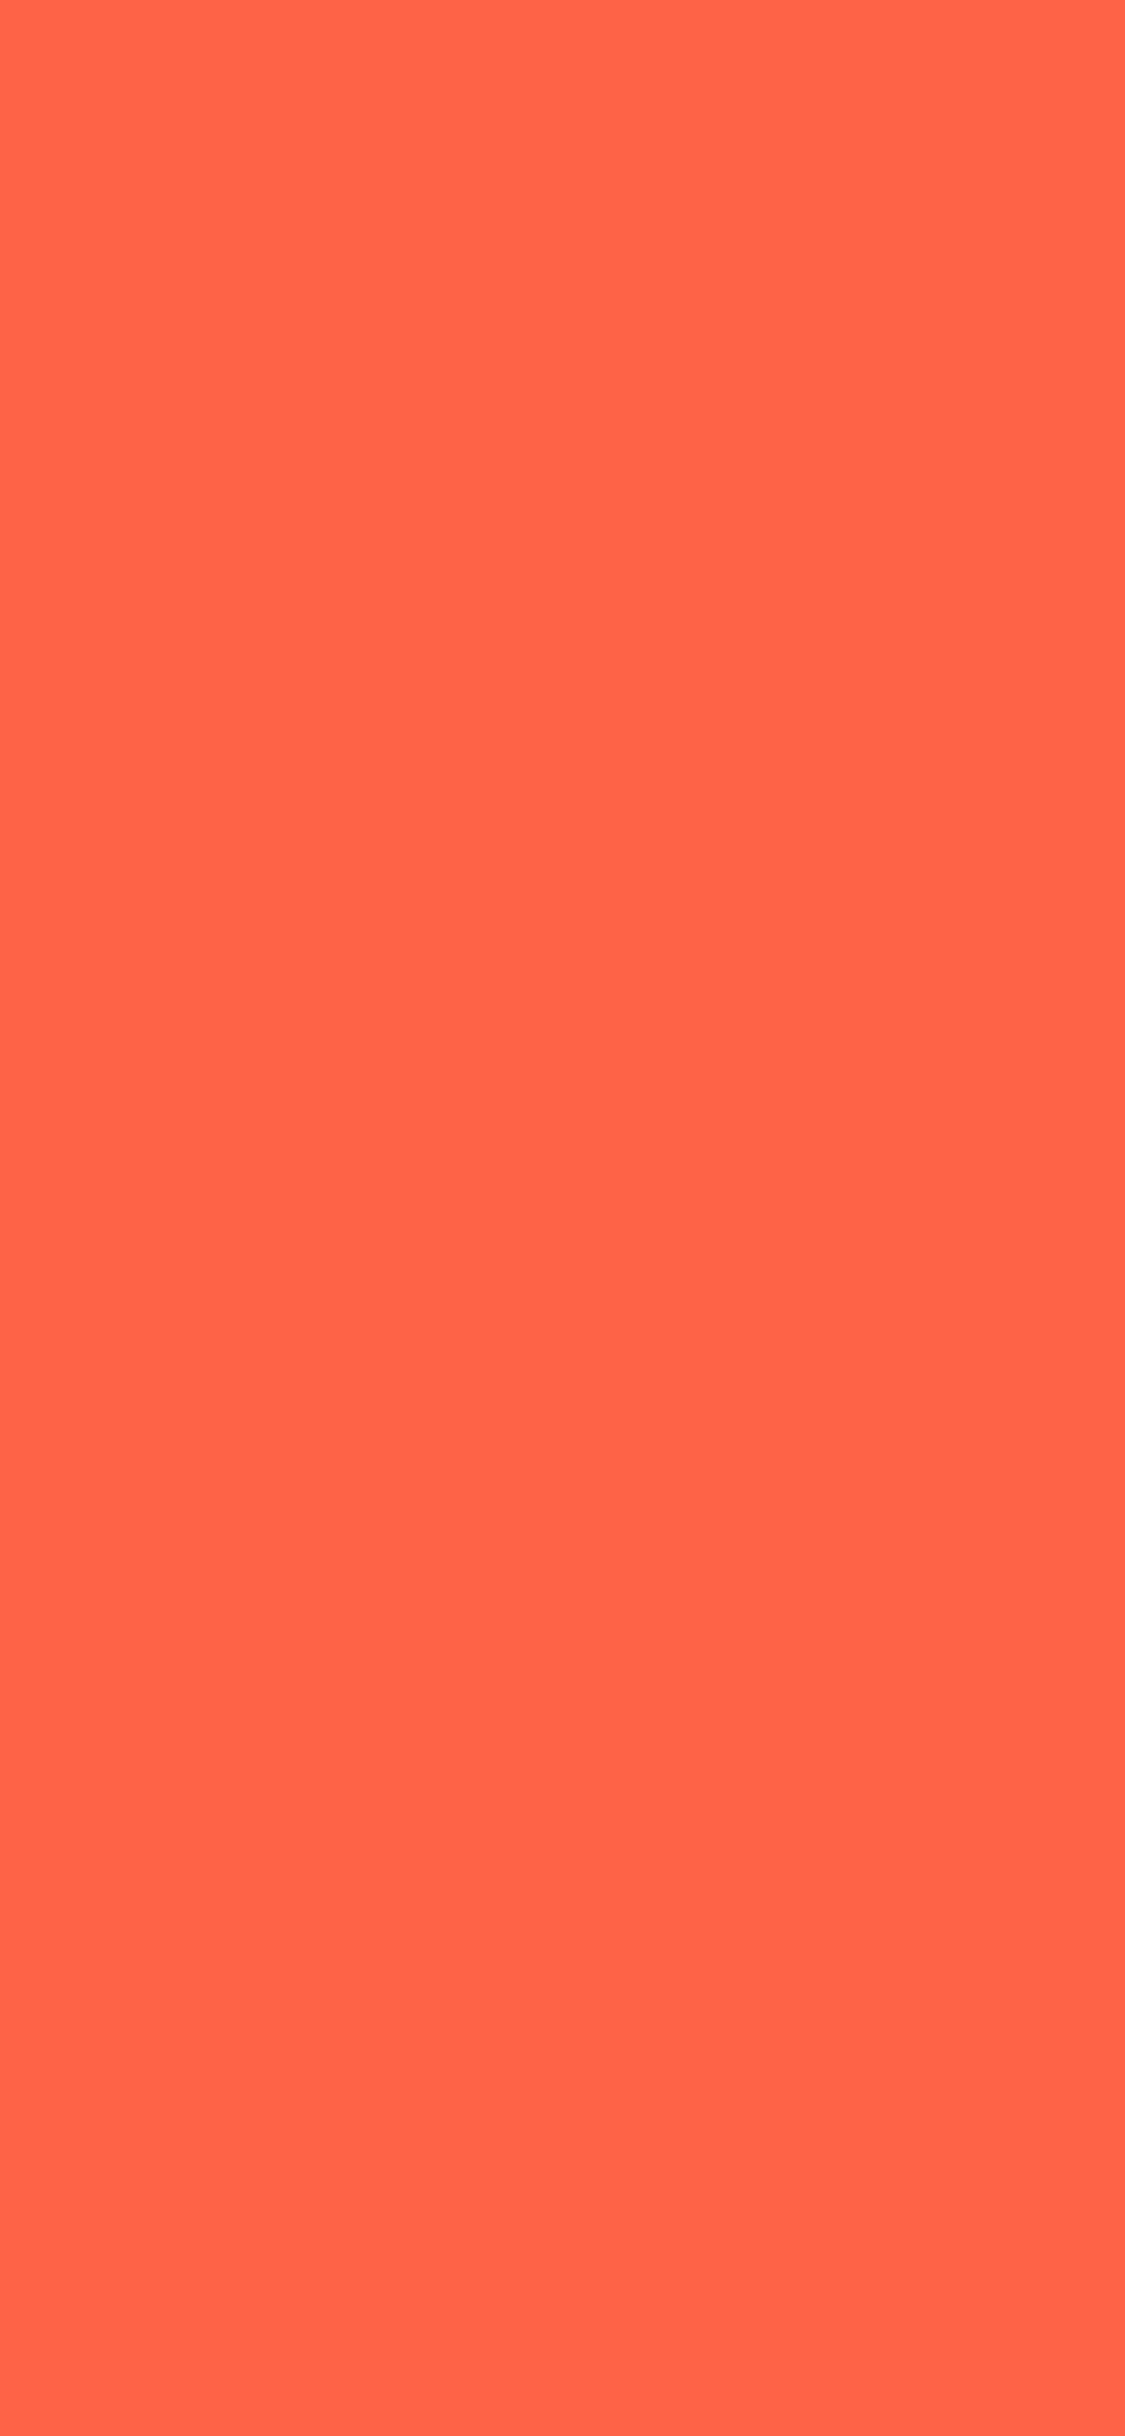 1125x2436 Tomato Solid Color Background